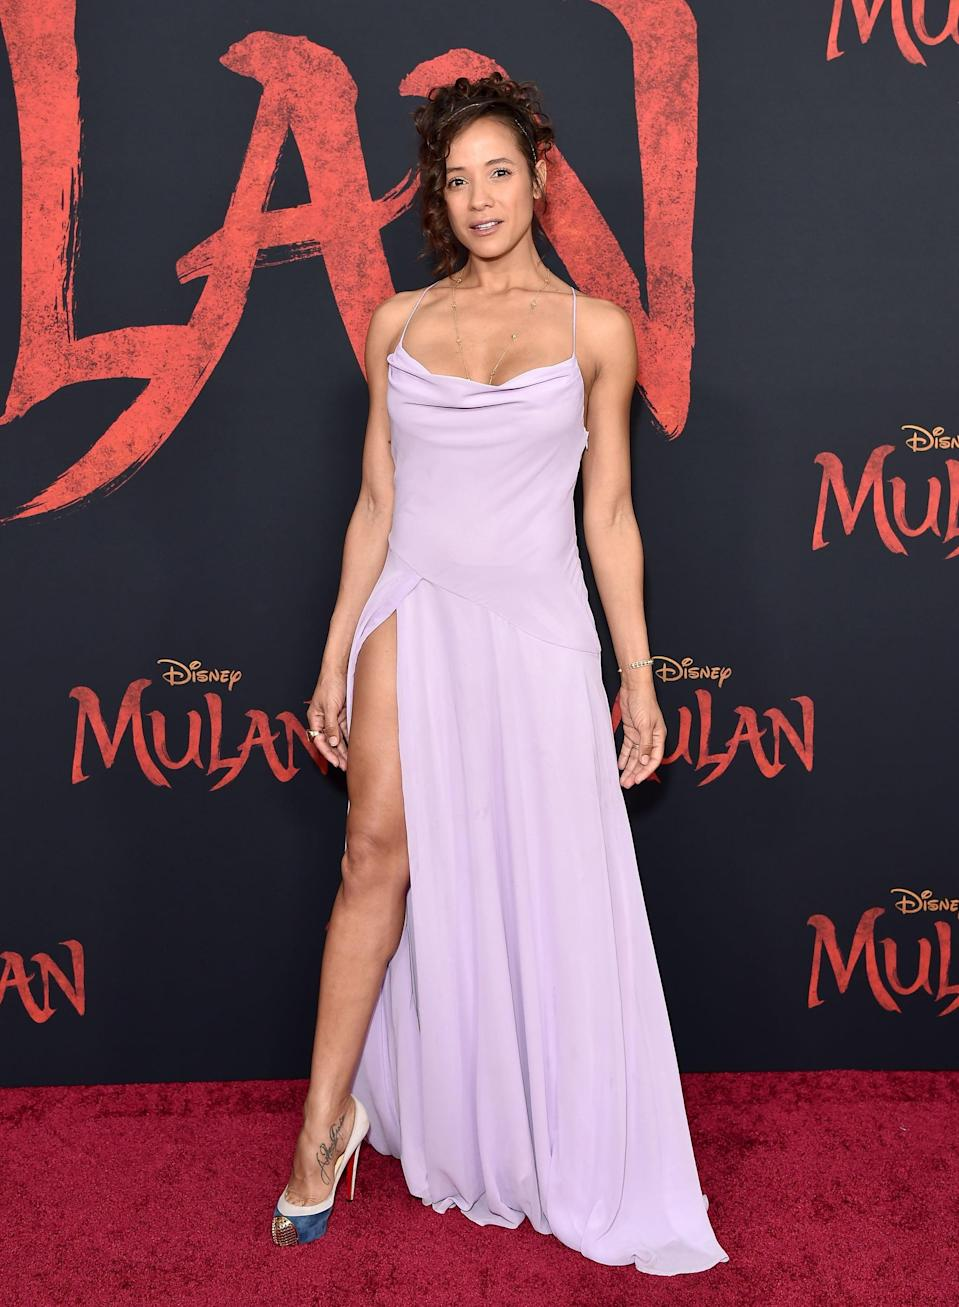 <p>Ramirez, who will be playing Aimee, is no stranger to fantasy TV: she played Cinderella in the final season of <strong>Once Upon a Time</strong>. Prior to that, she had series-regular roles on <strong>Devious Maids</strong> and <strong>Heroes</strong> and, most recently, the thriller <strong>Tell Me a Story</strong>.</p>